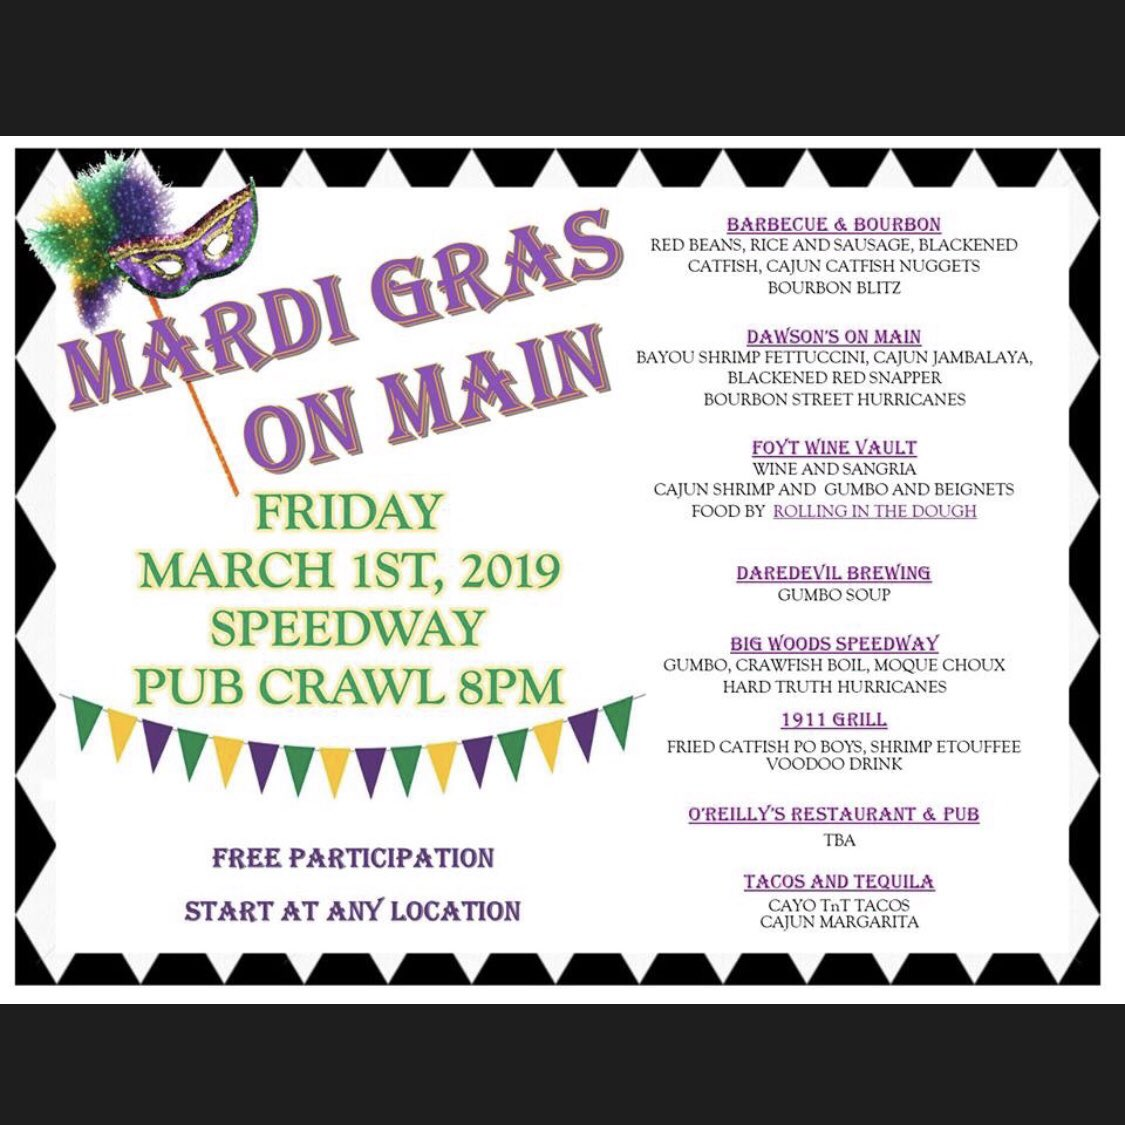 Two upcoming events on Speedways Main Street - Mardi Gras on Main Friday and Sip & Shop at @BigWoodsSpdwy Wednesday. Go to Speedway Chamber of Commerce Facebook page or see flyers here. ⤵️